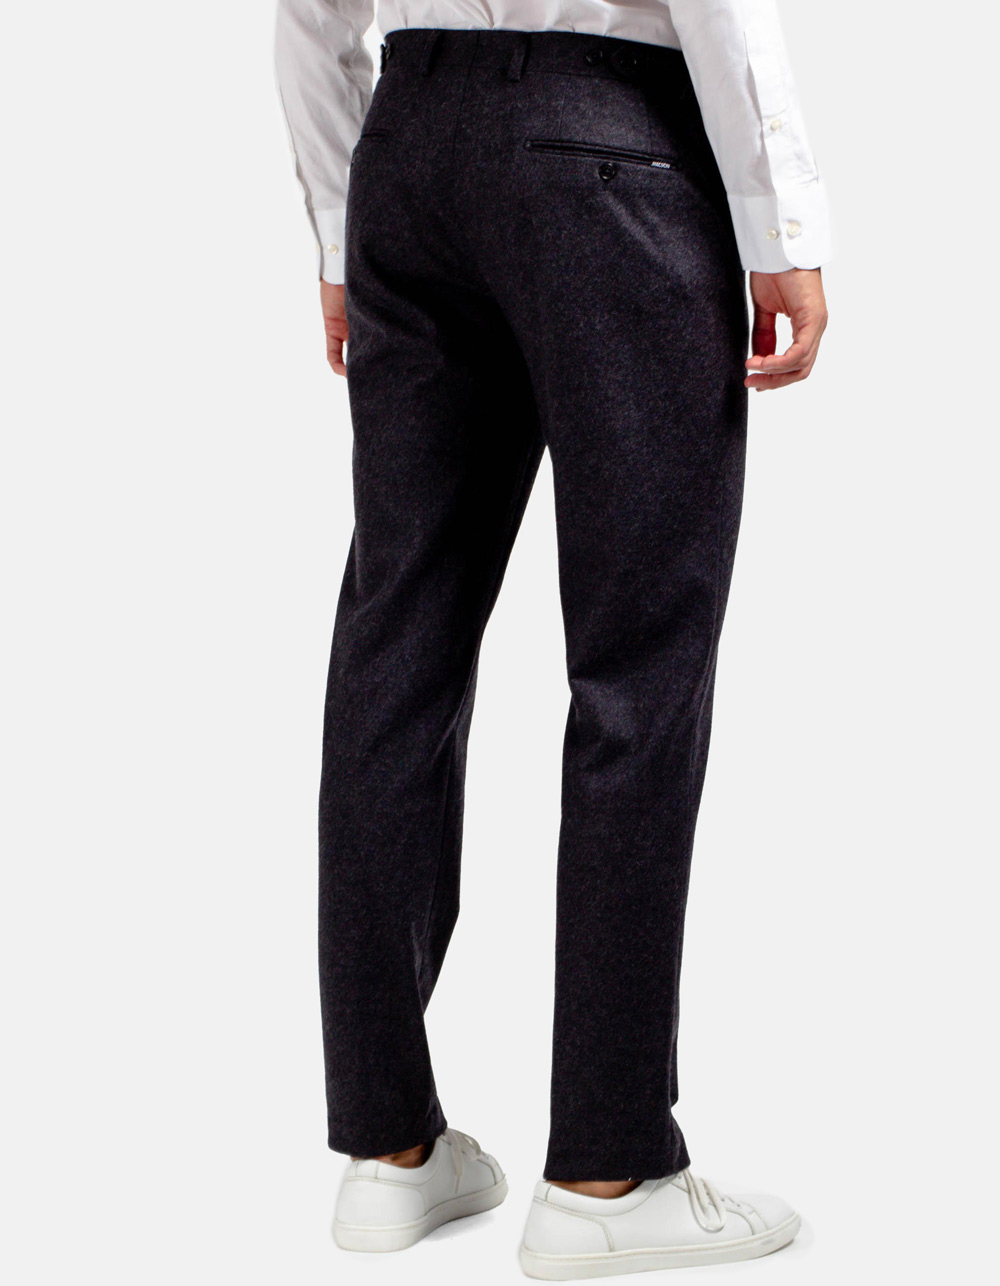 Charcoal formal trousers - Backside